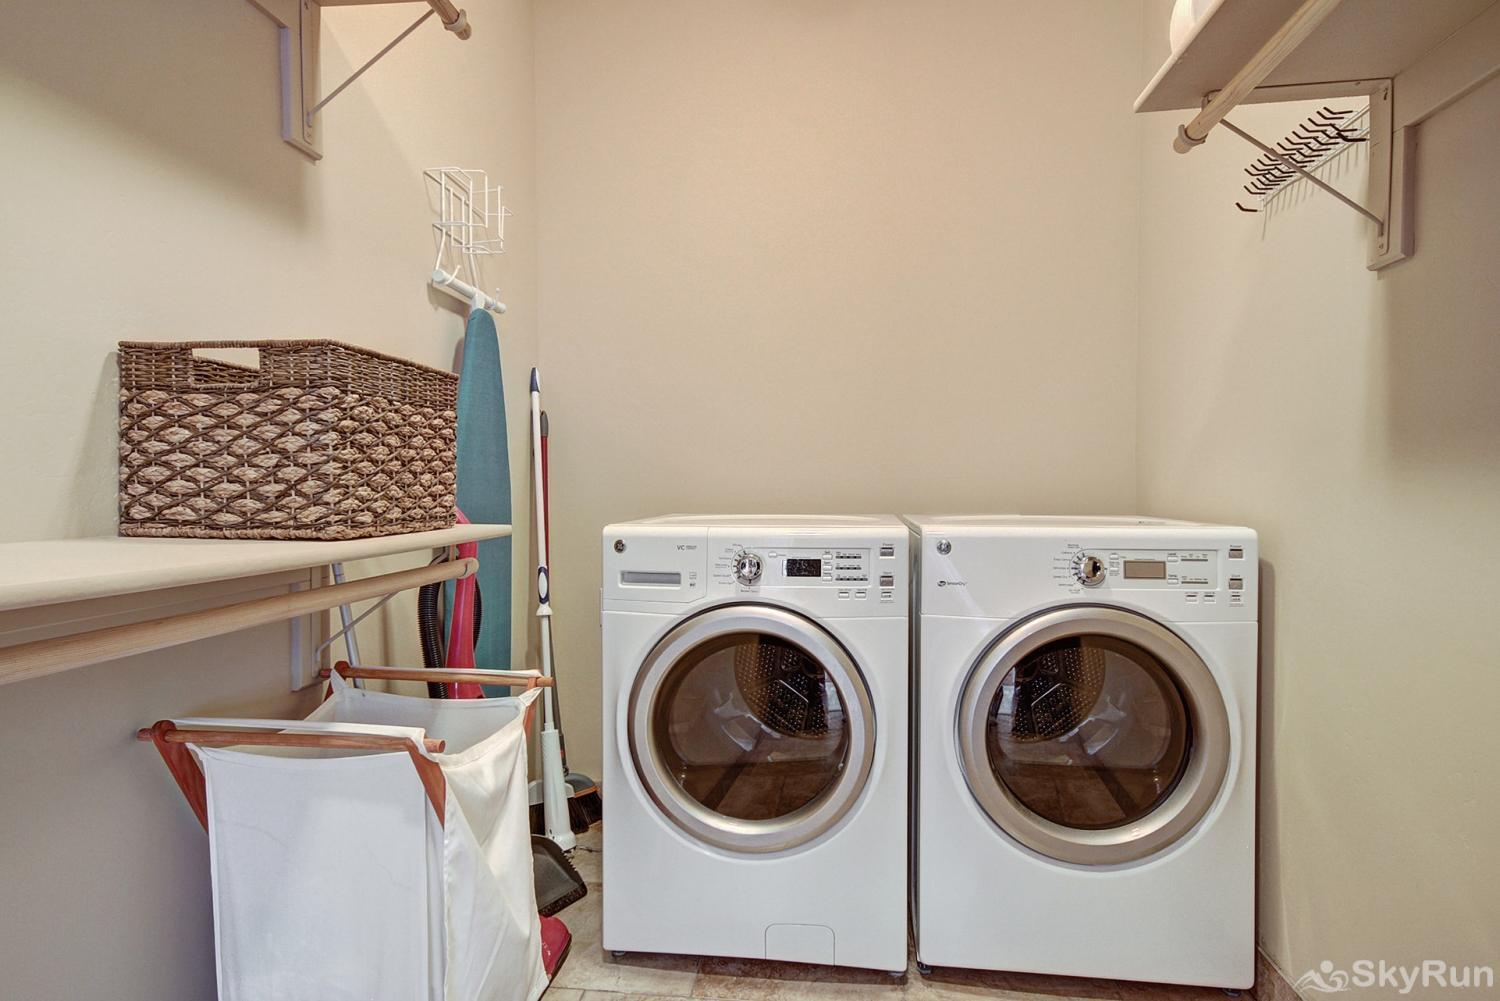 54 Frey Gulch Washer and Dryer